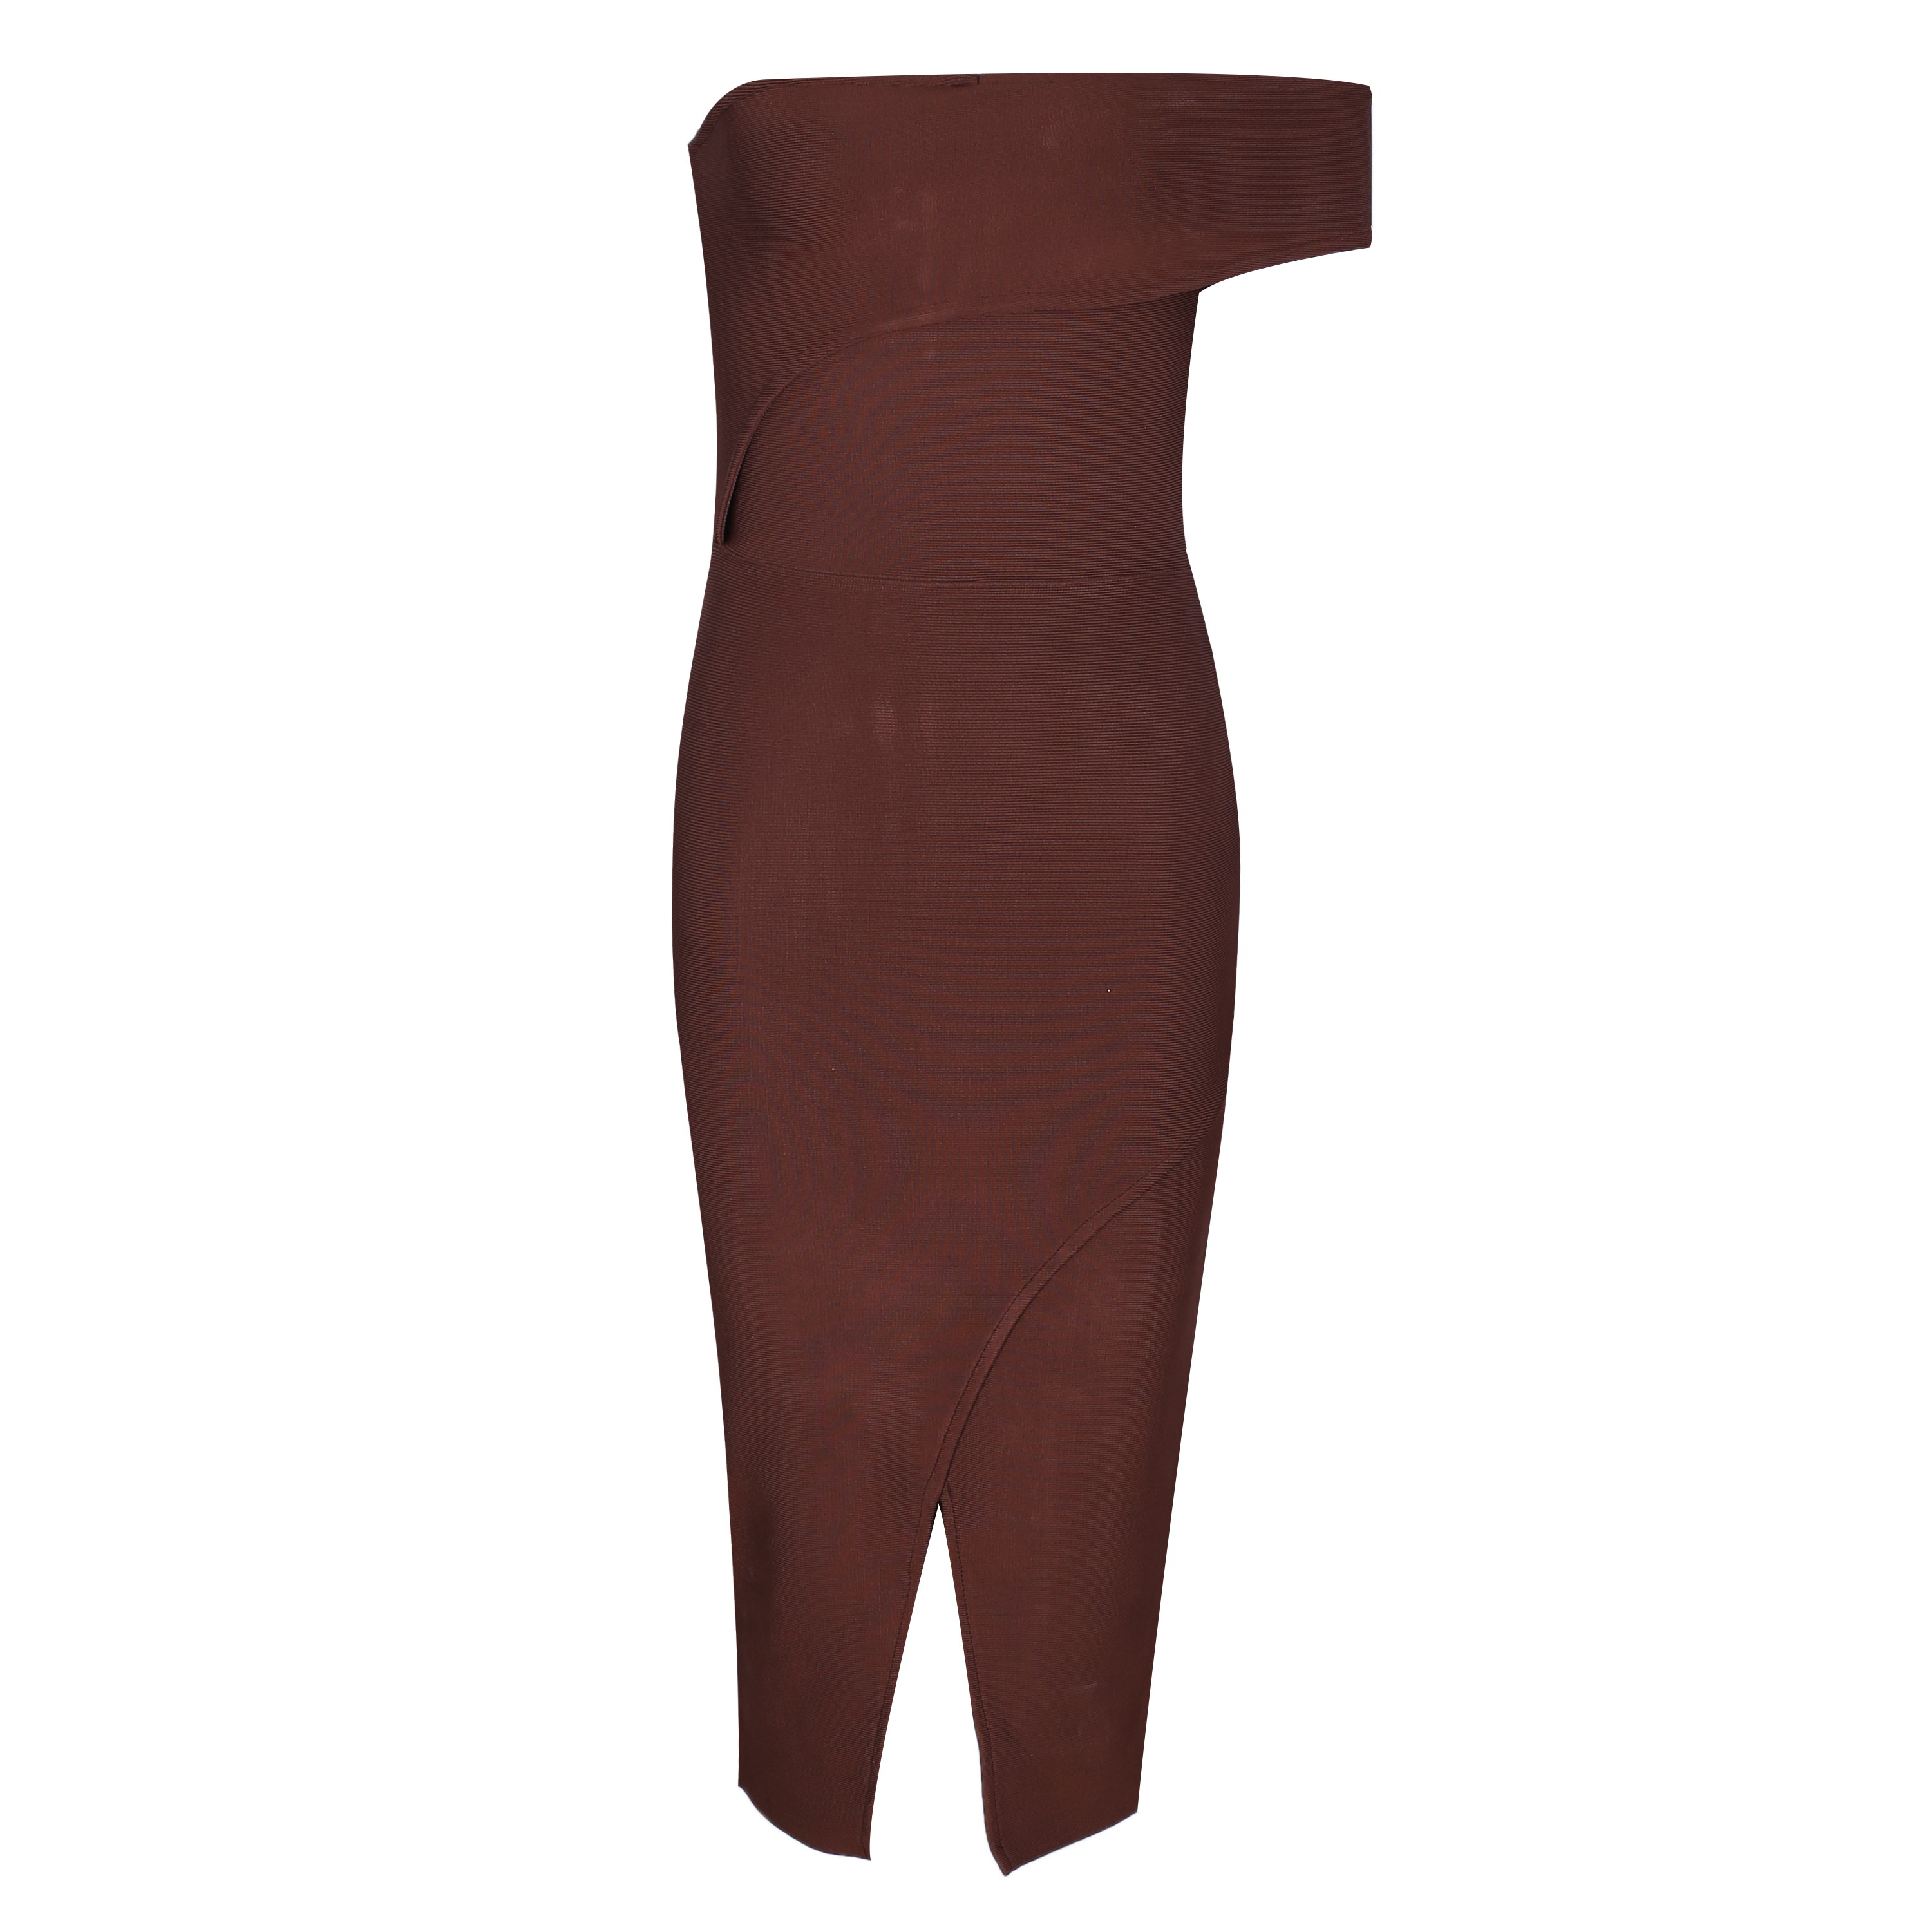 Brown Off Shoulder Sleeveless Over Knee Cutout Evening Bandage Dress HB449-Brown